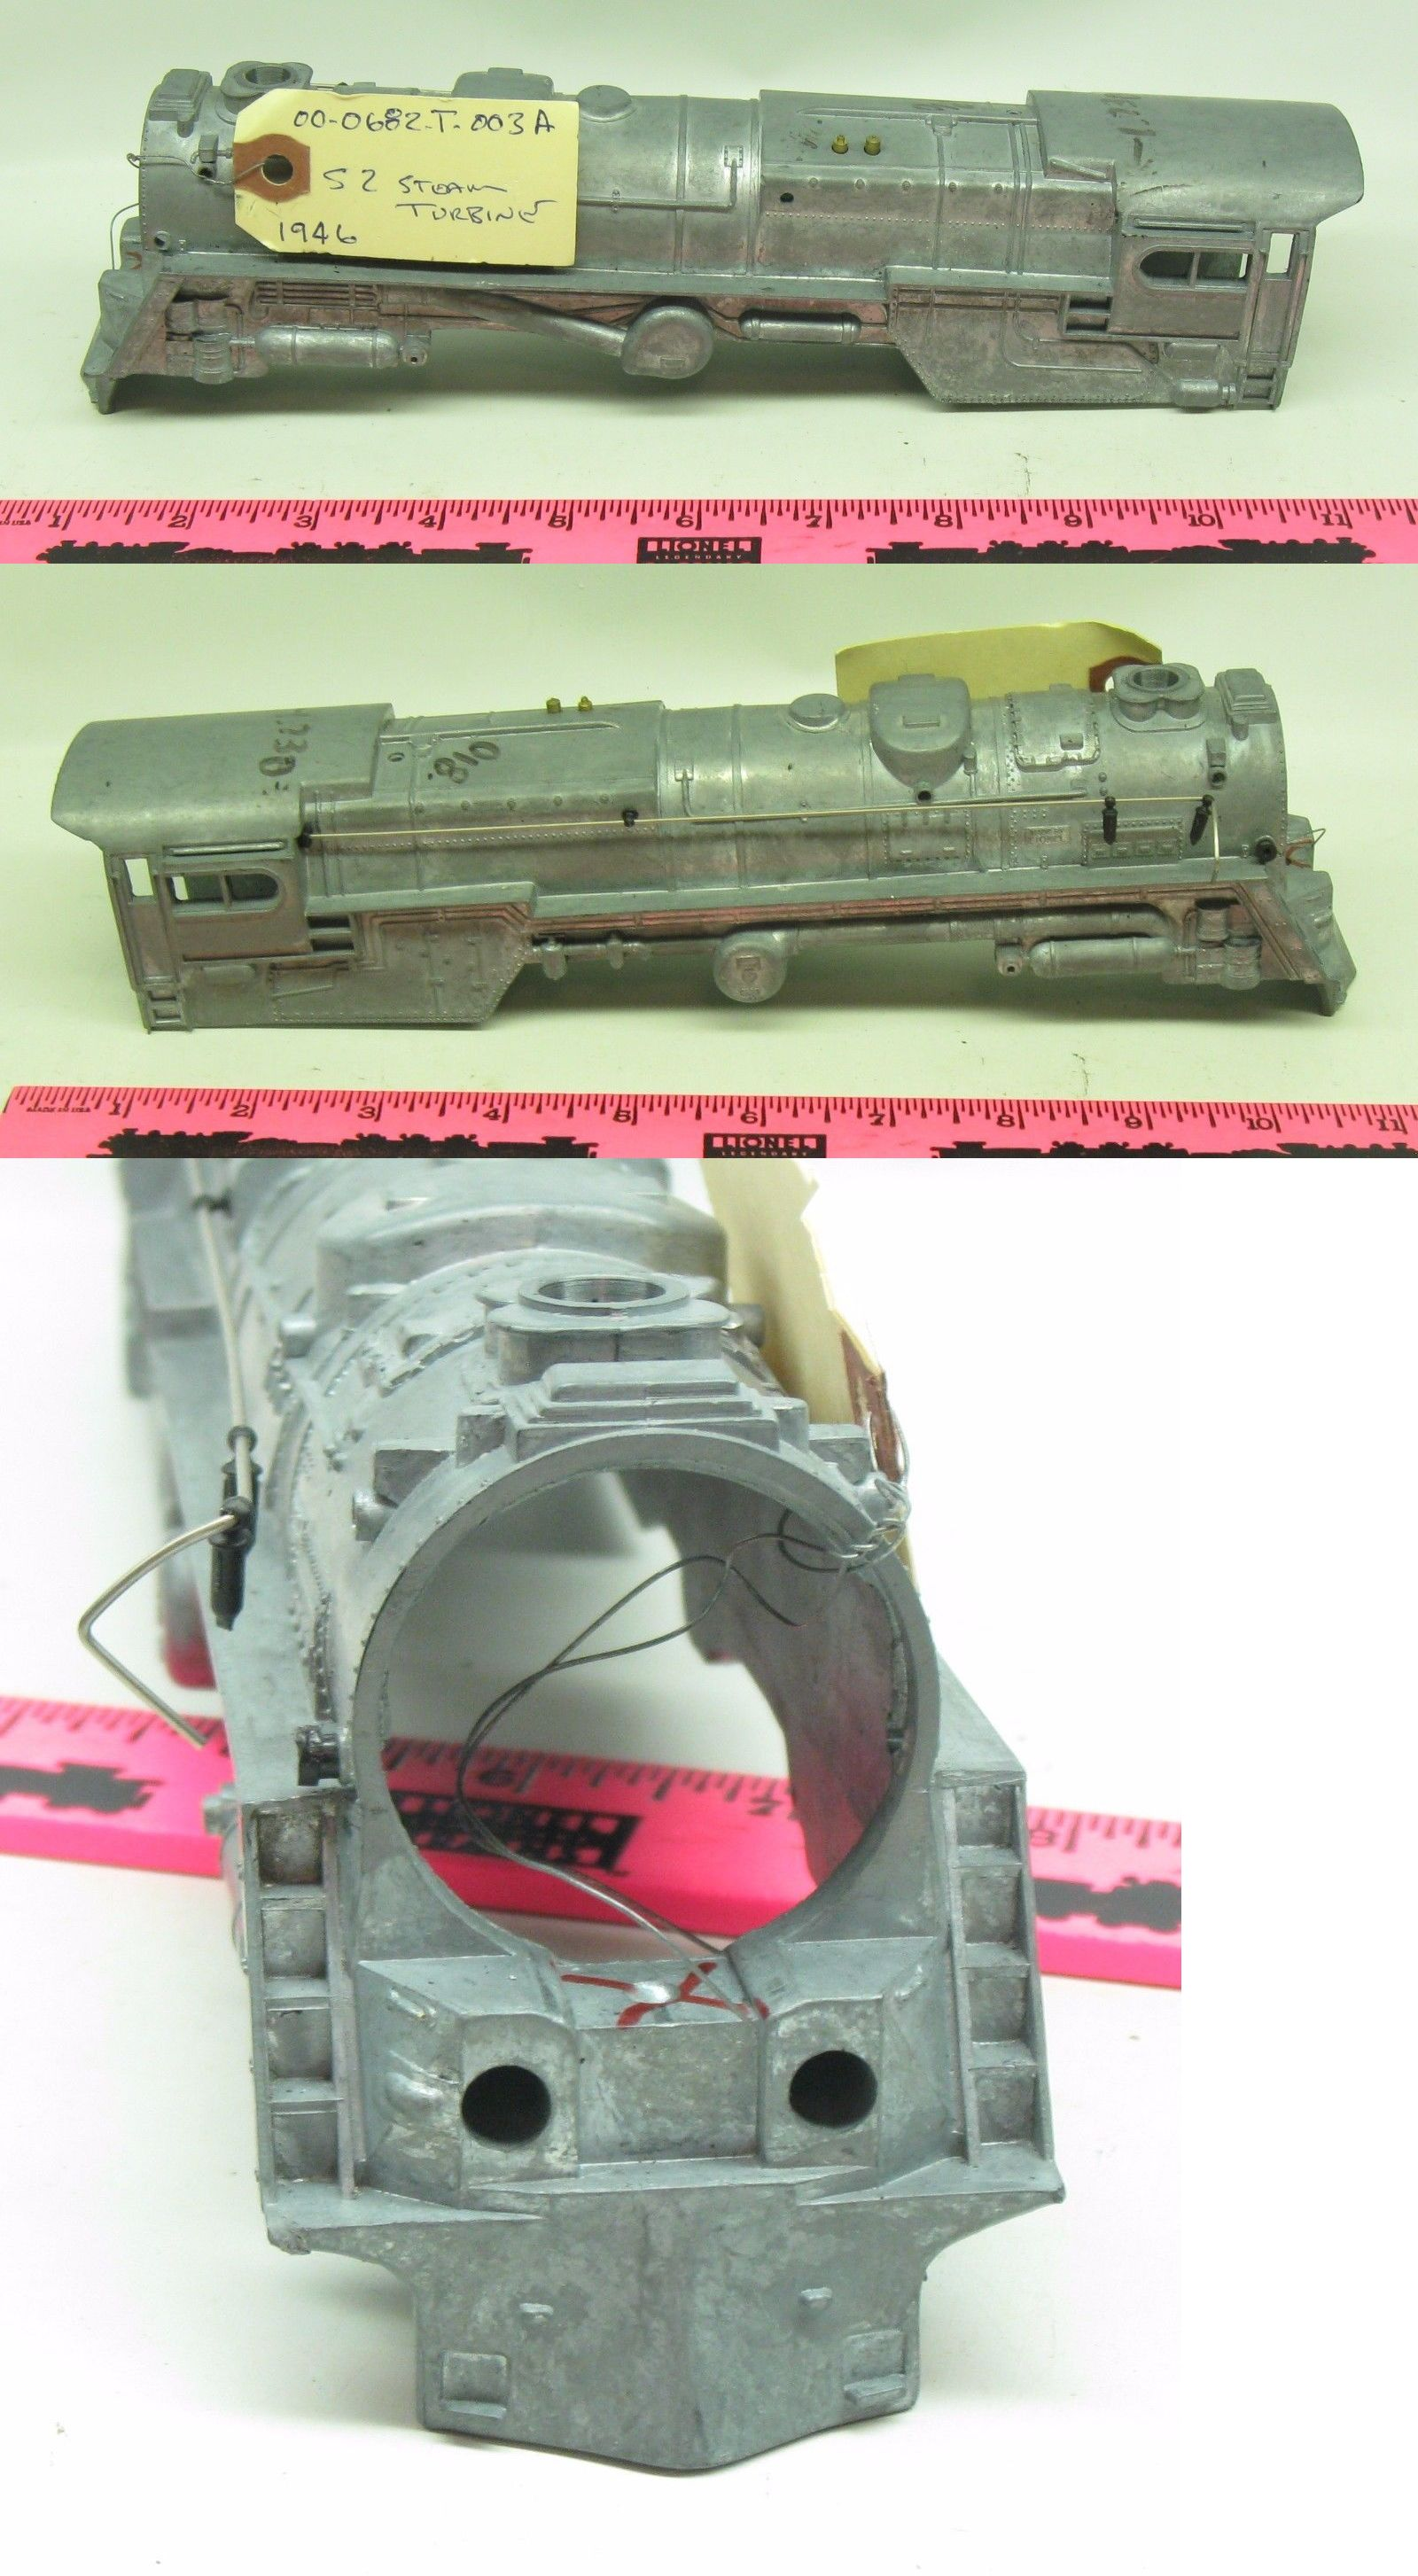 Parts and Spares Lionel Shell 00 0682 T 003A S2 Steam